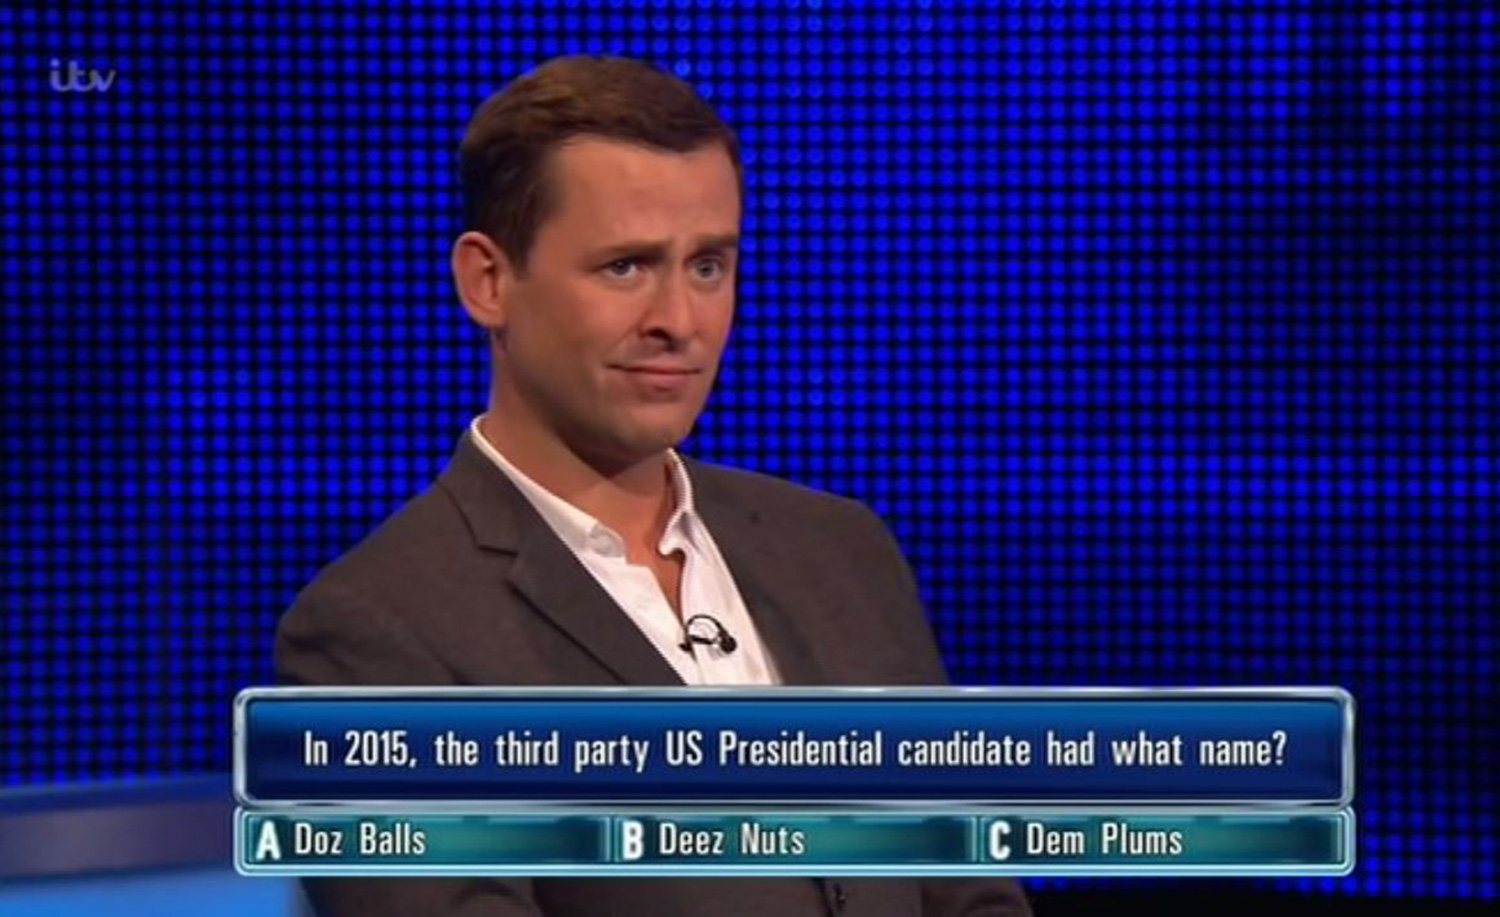 Mills' appearance on The Chase goes viral